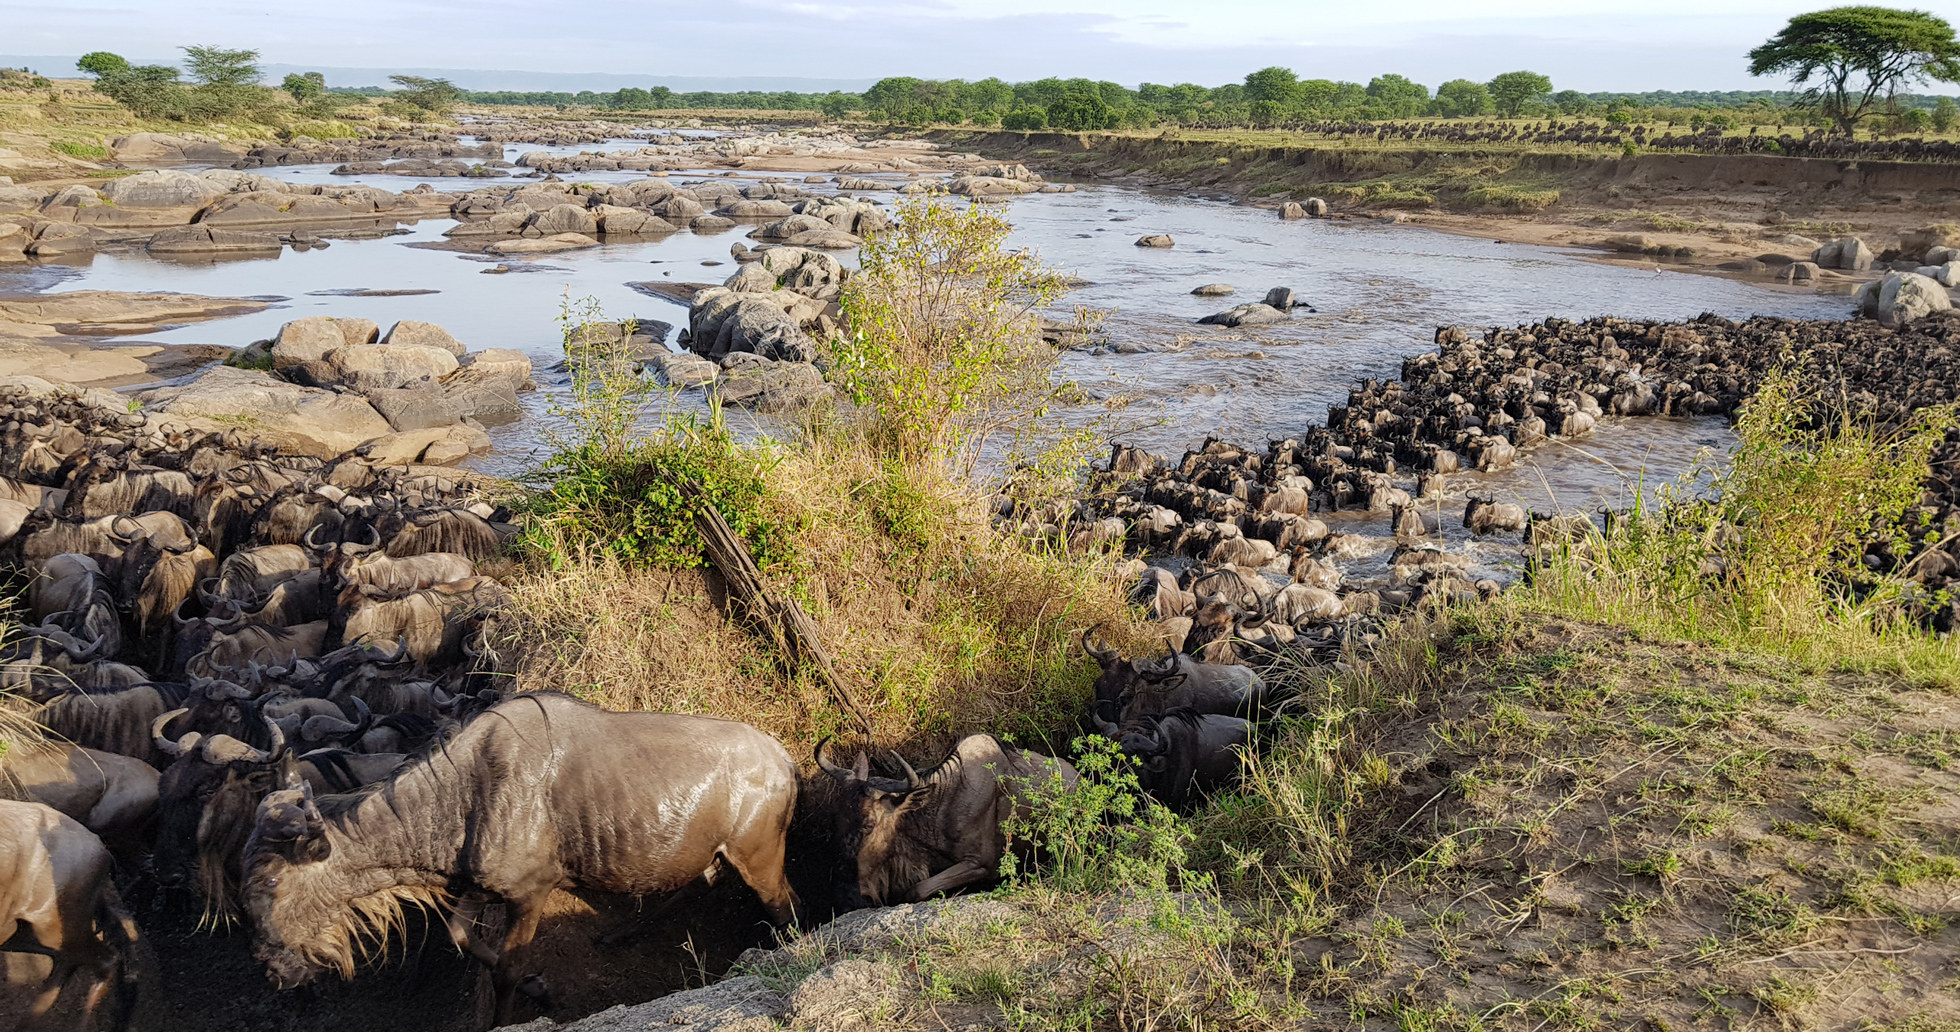 Wildebeest climbing up the bank of the river after a crossing